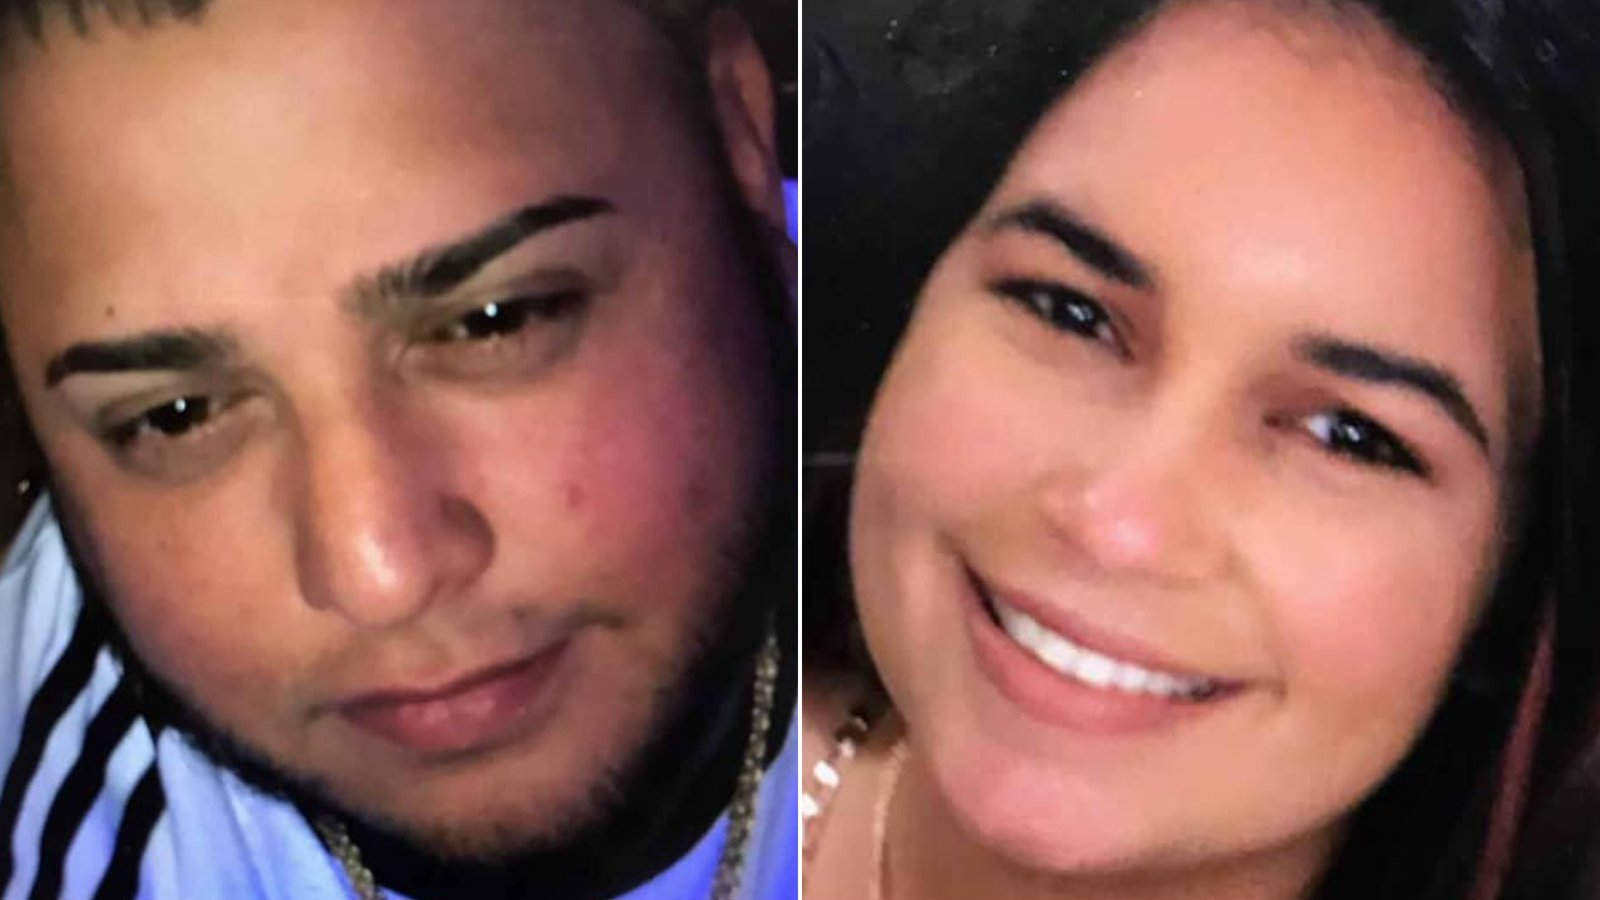 A 3-year-old boy was found sleeping on a porch. Police say his parents are missing and their car was burned